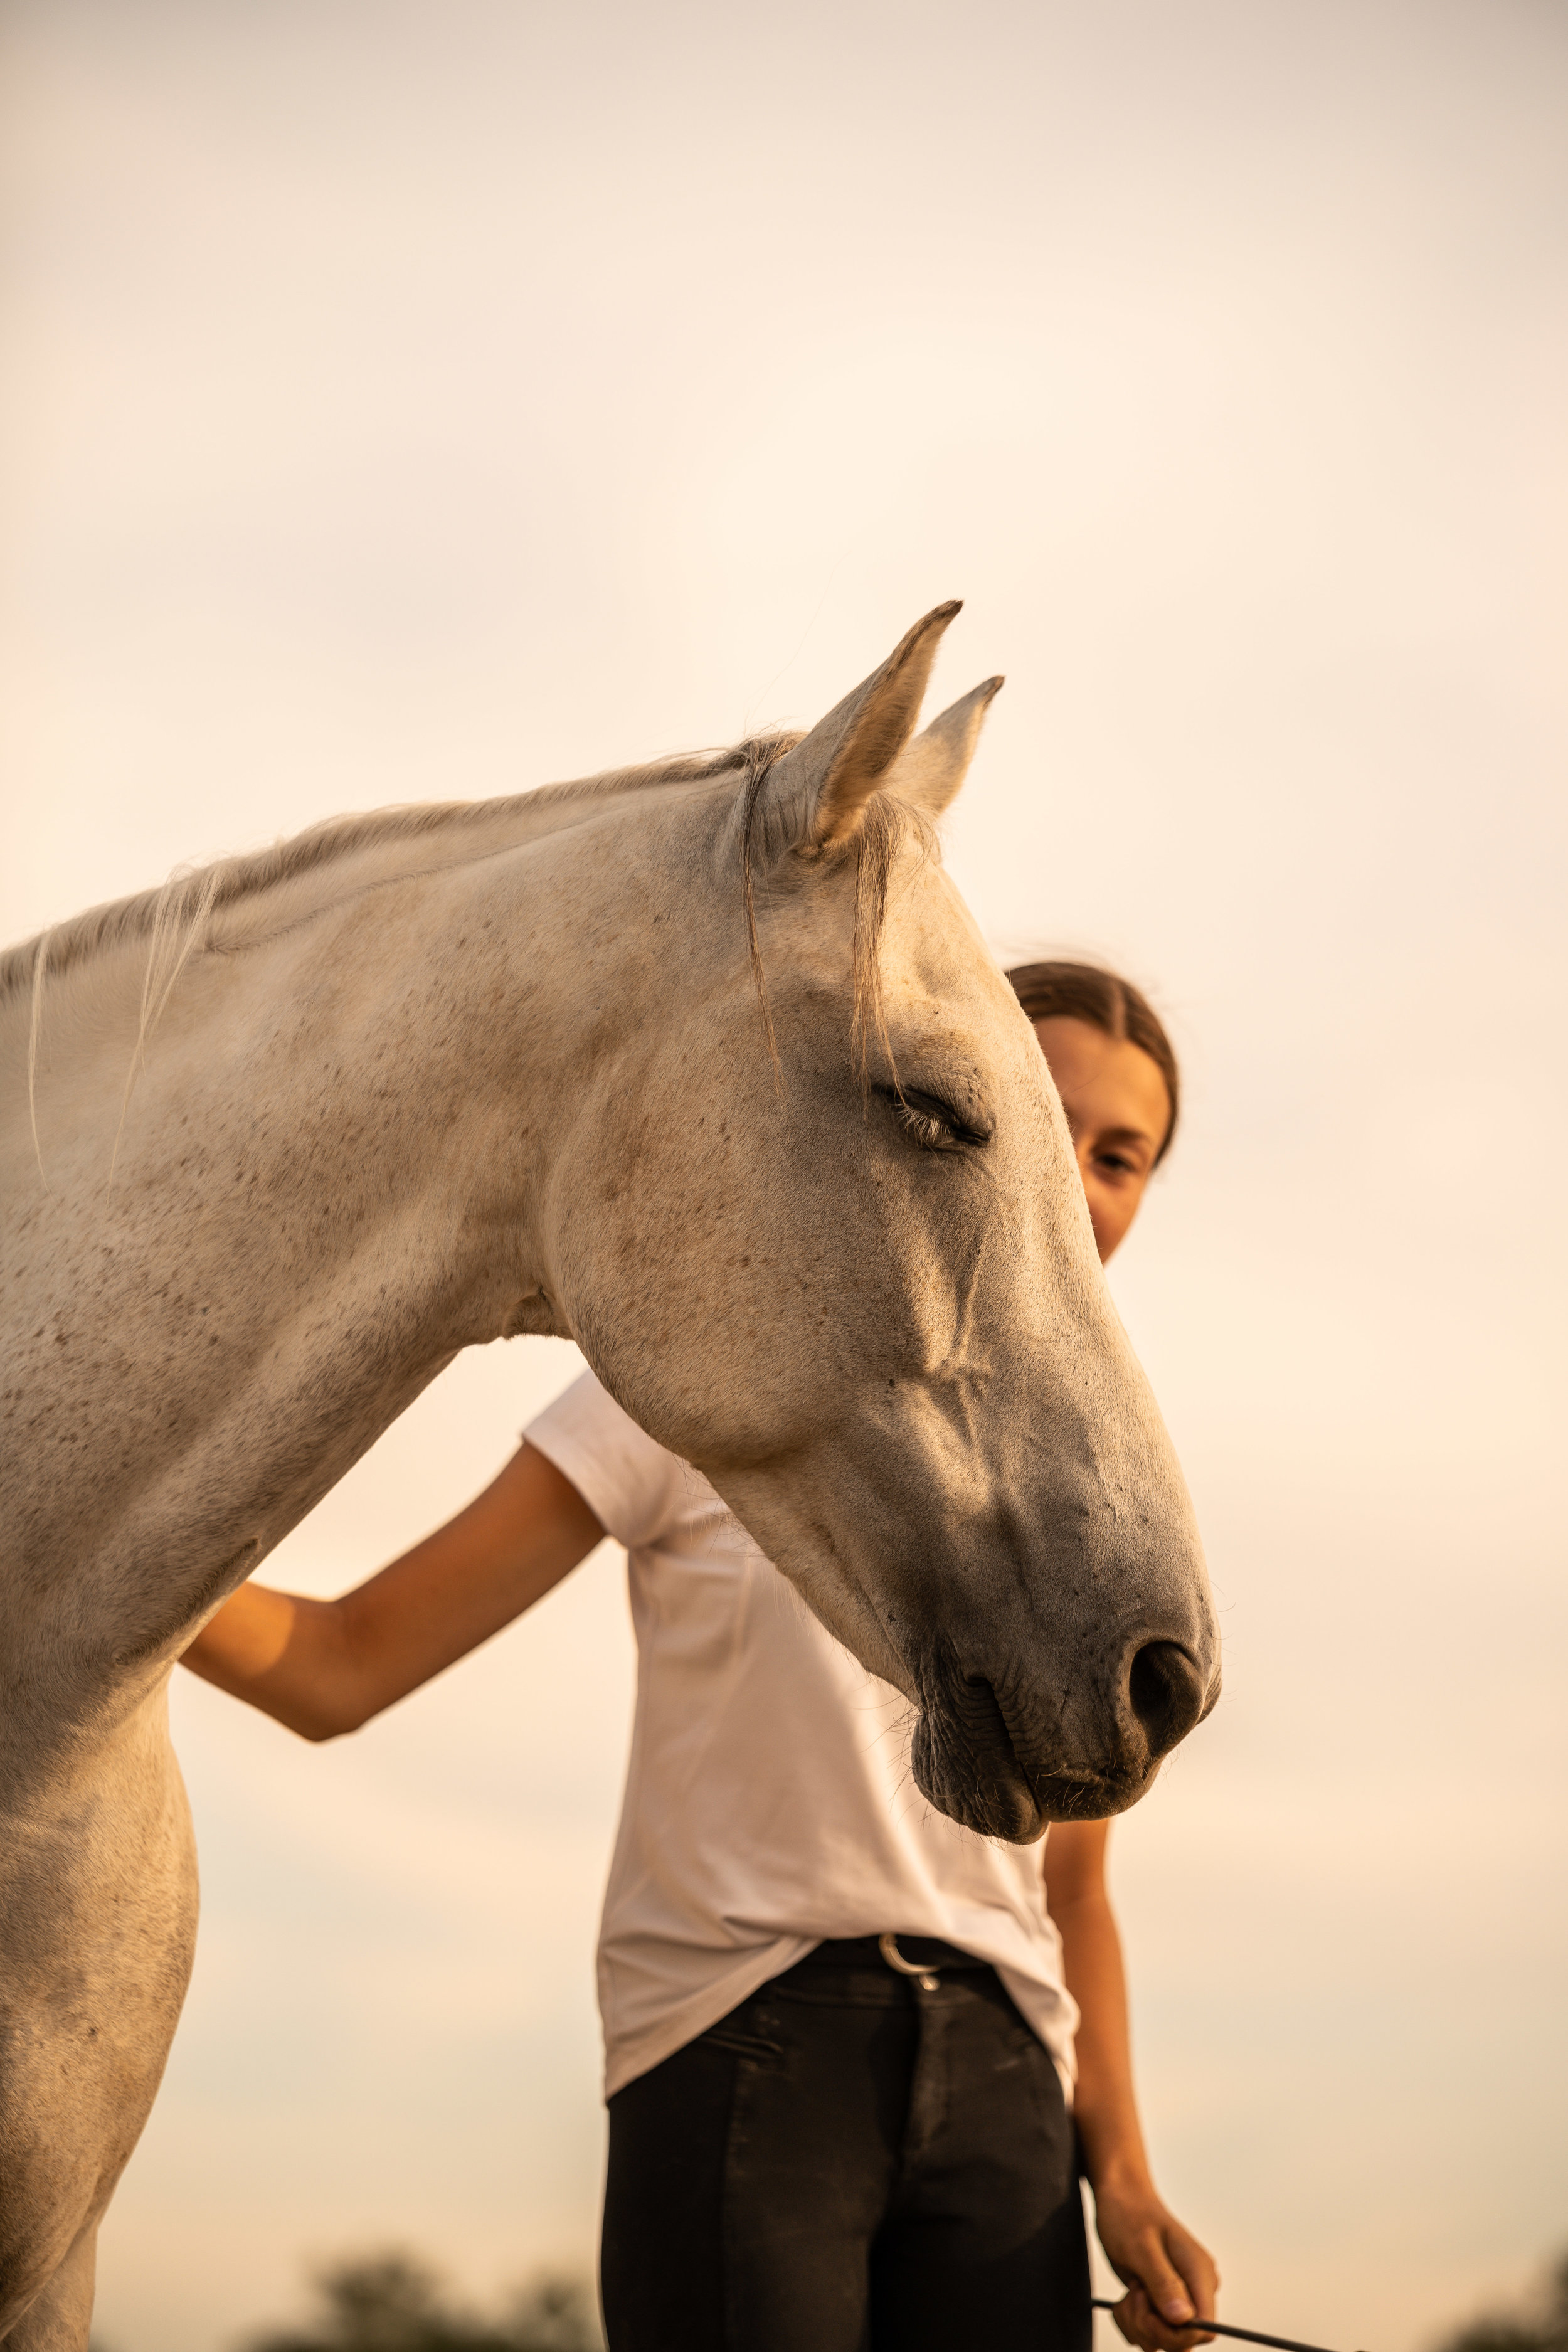 A quiet moment between a girl and her horse